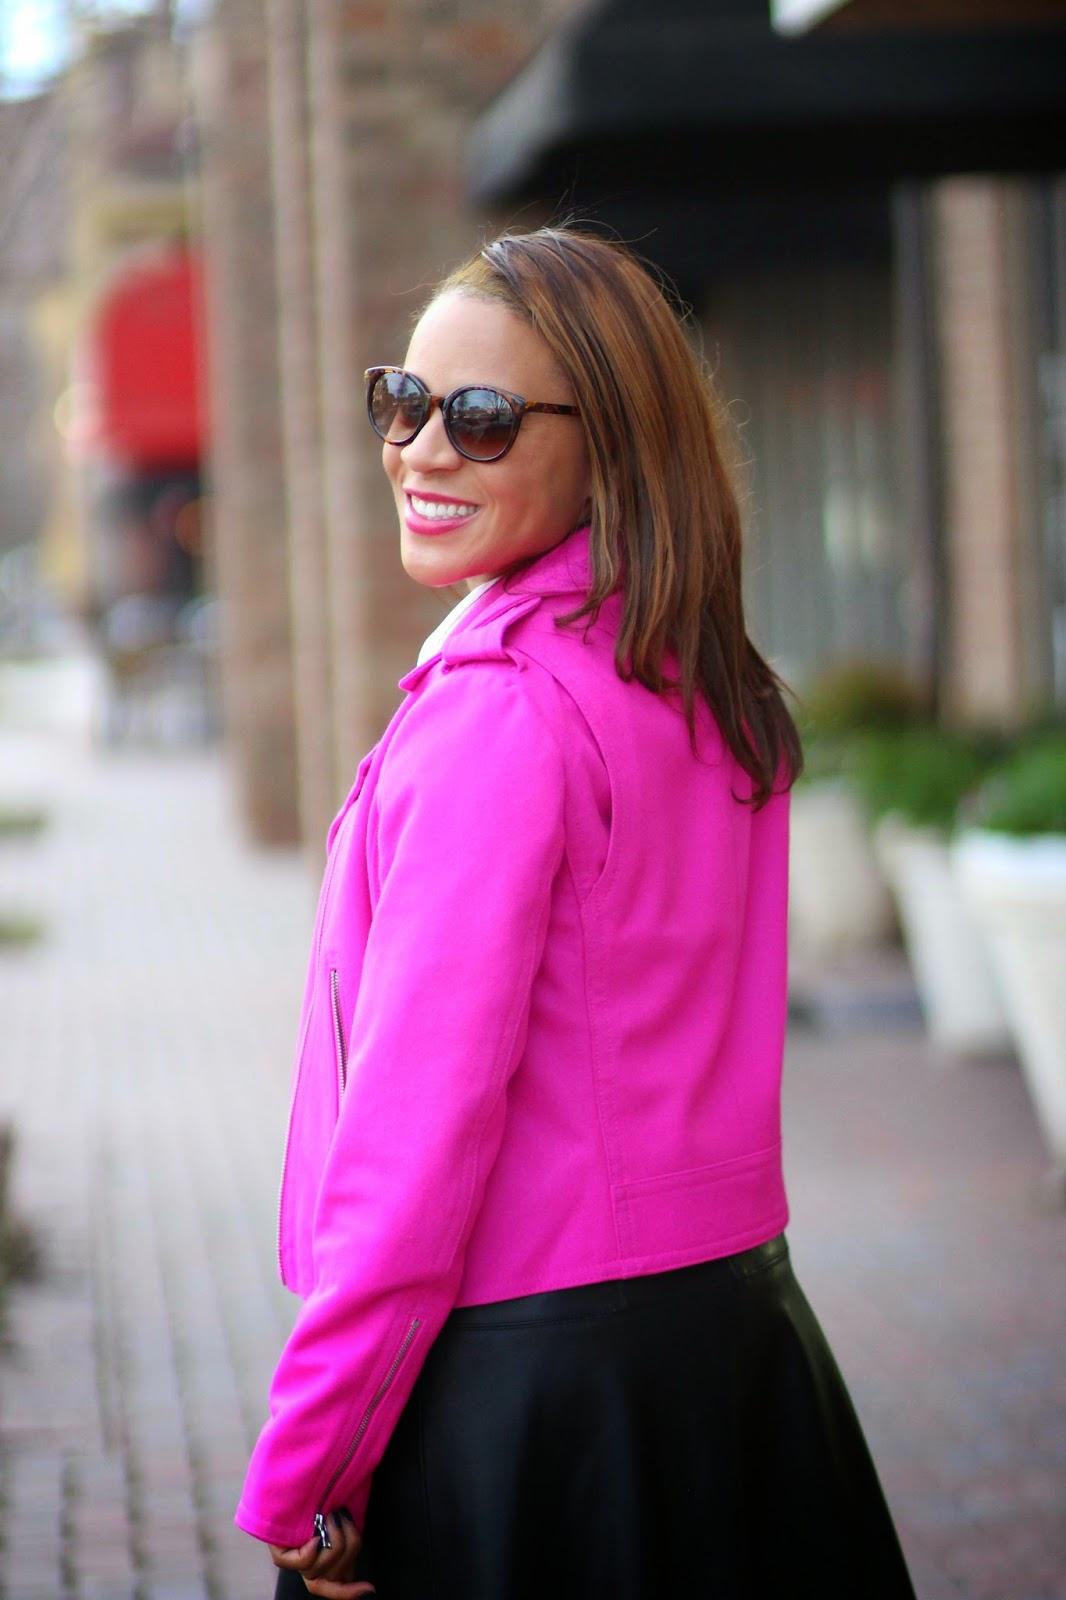 Nicole-to-the-Nines-Pink-jacket